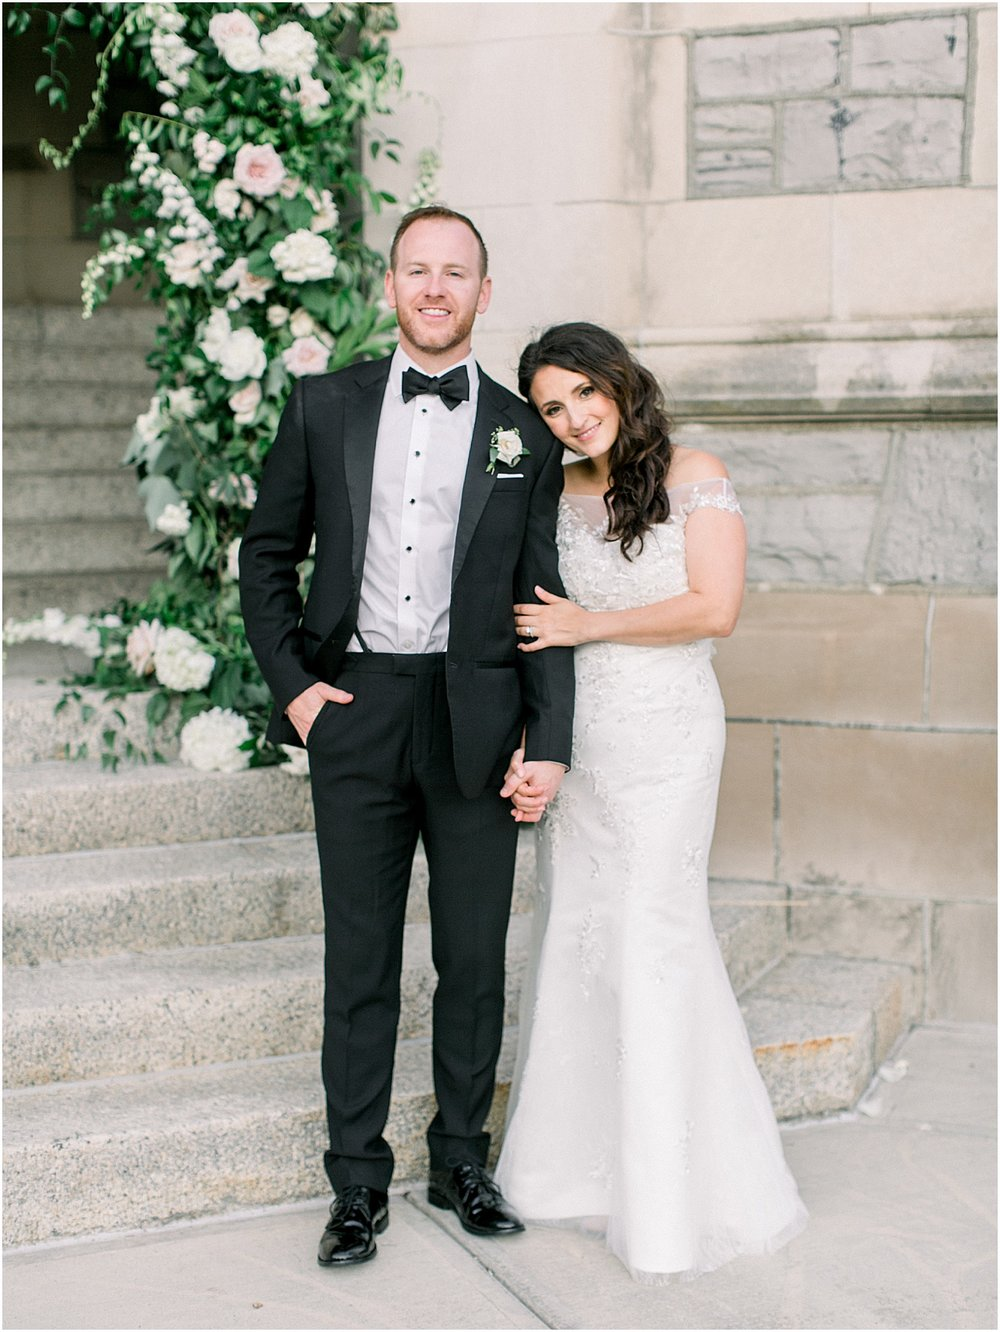 our_wedding_day_troy_NY_emma_willard_fairy_tale_royal_neutral_beauty_and_the_beast_moped_private_estate_cape_cod_boston_wedding_photographer_meredith_jane_photography_chris_kerr_photo_1995.jpg